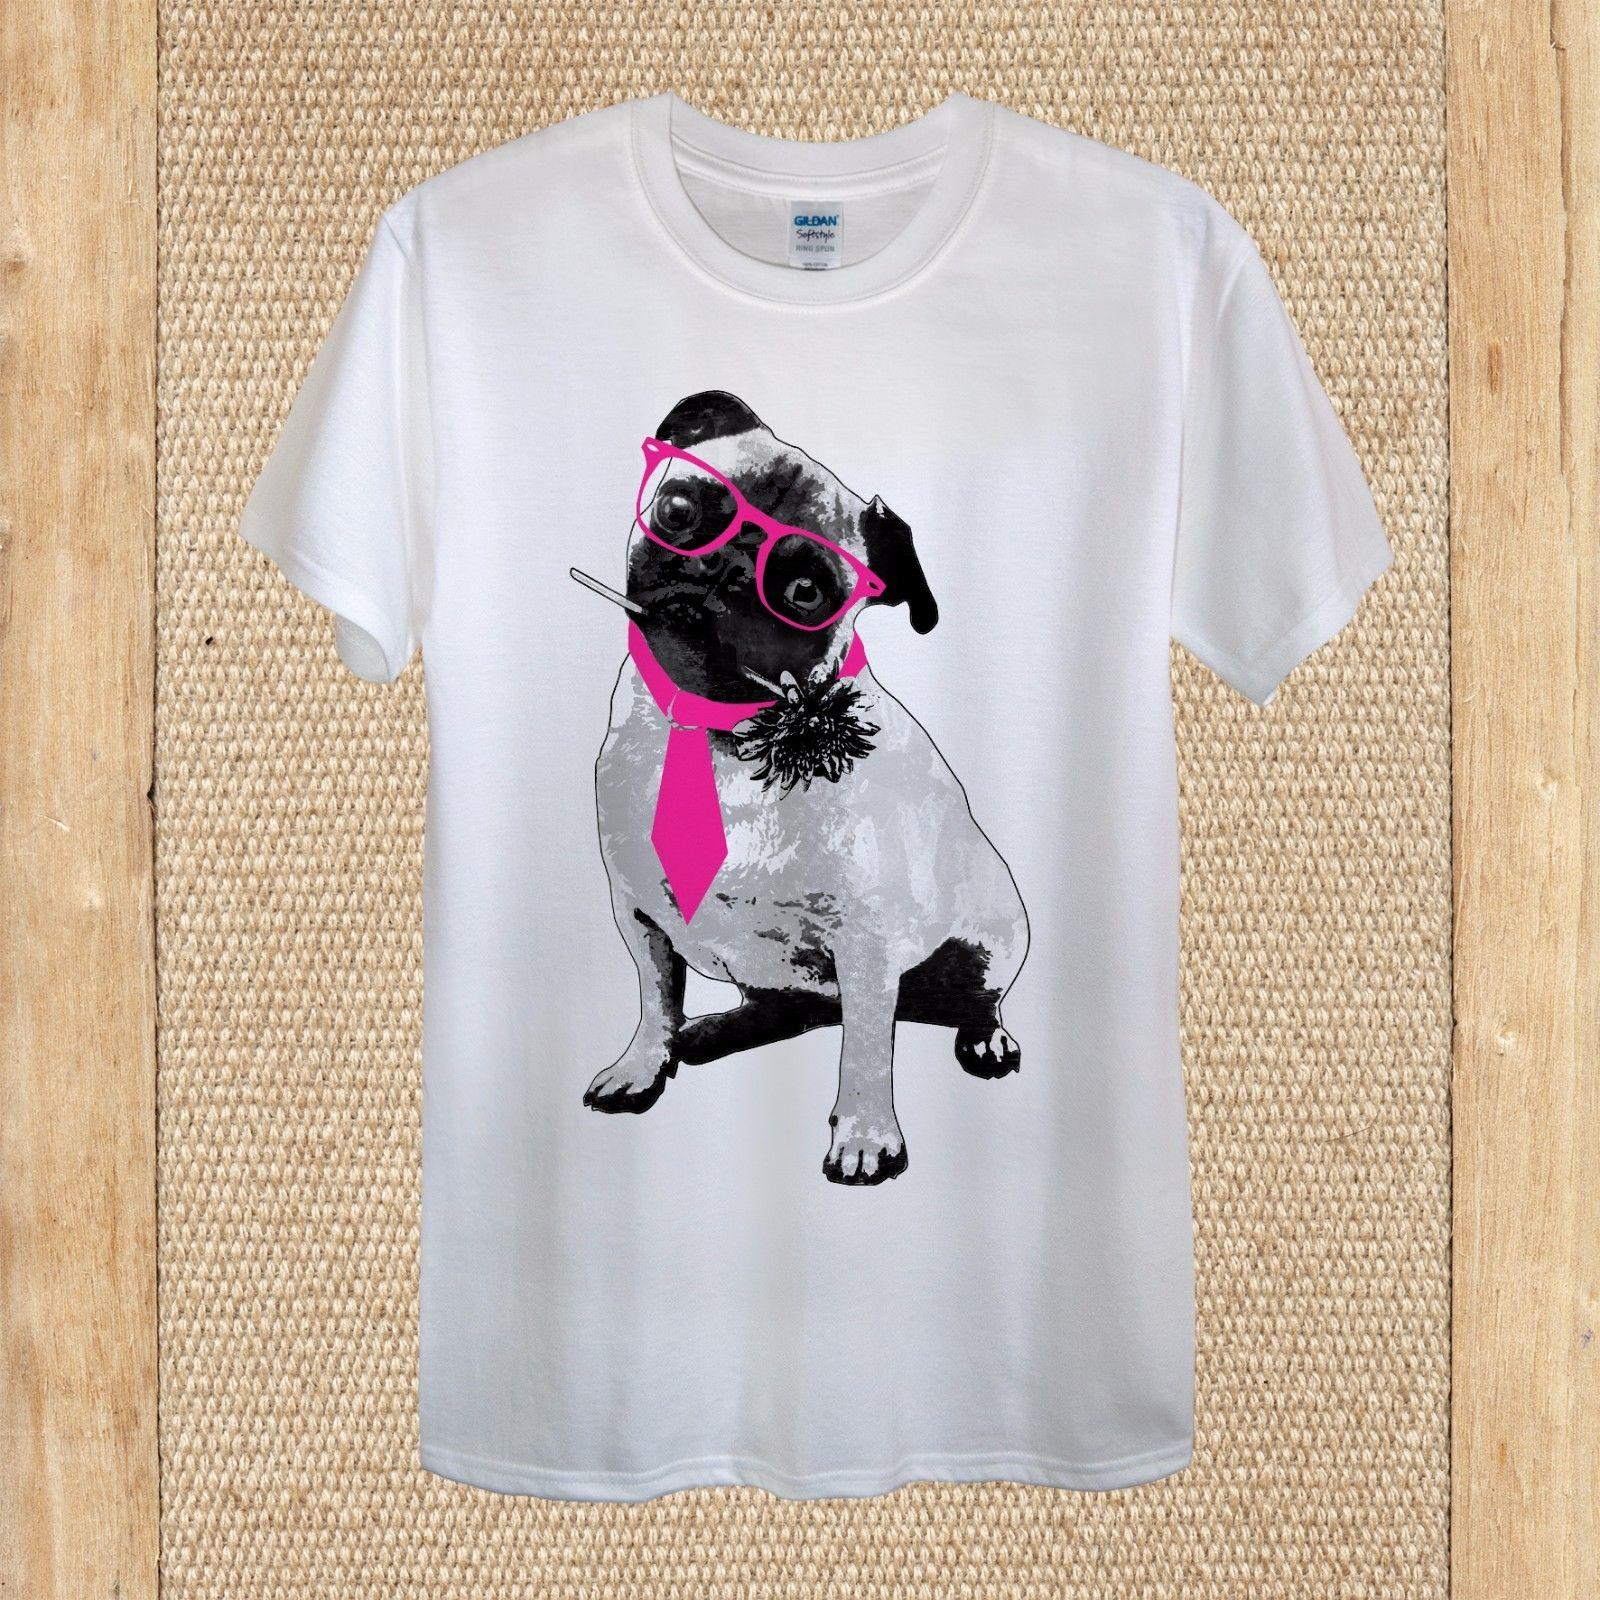 Pug Hipster Pink Glasses Funny Cute Tshirt Design 100% Cotton unisex women Brand shirts jeans Print cattt windbreaker Pug tshirt